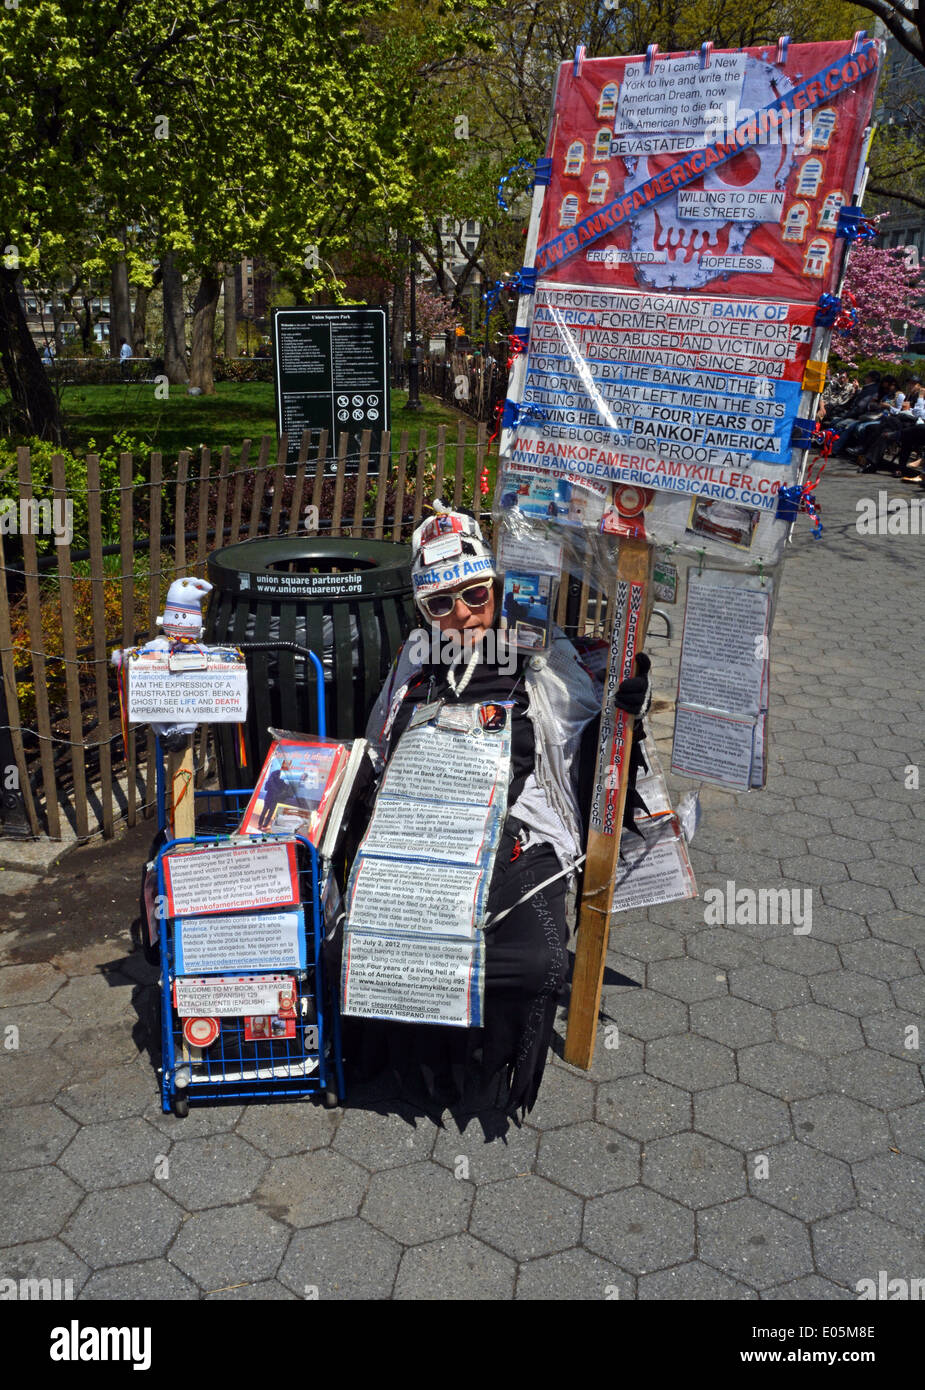 A woman demonstrating against the Bank of America  at the May Day Rally at Union Square Park in Manhattan, New York City. - Stock Image